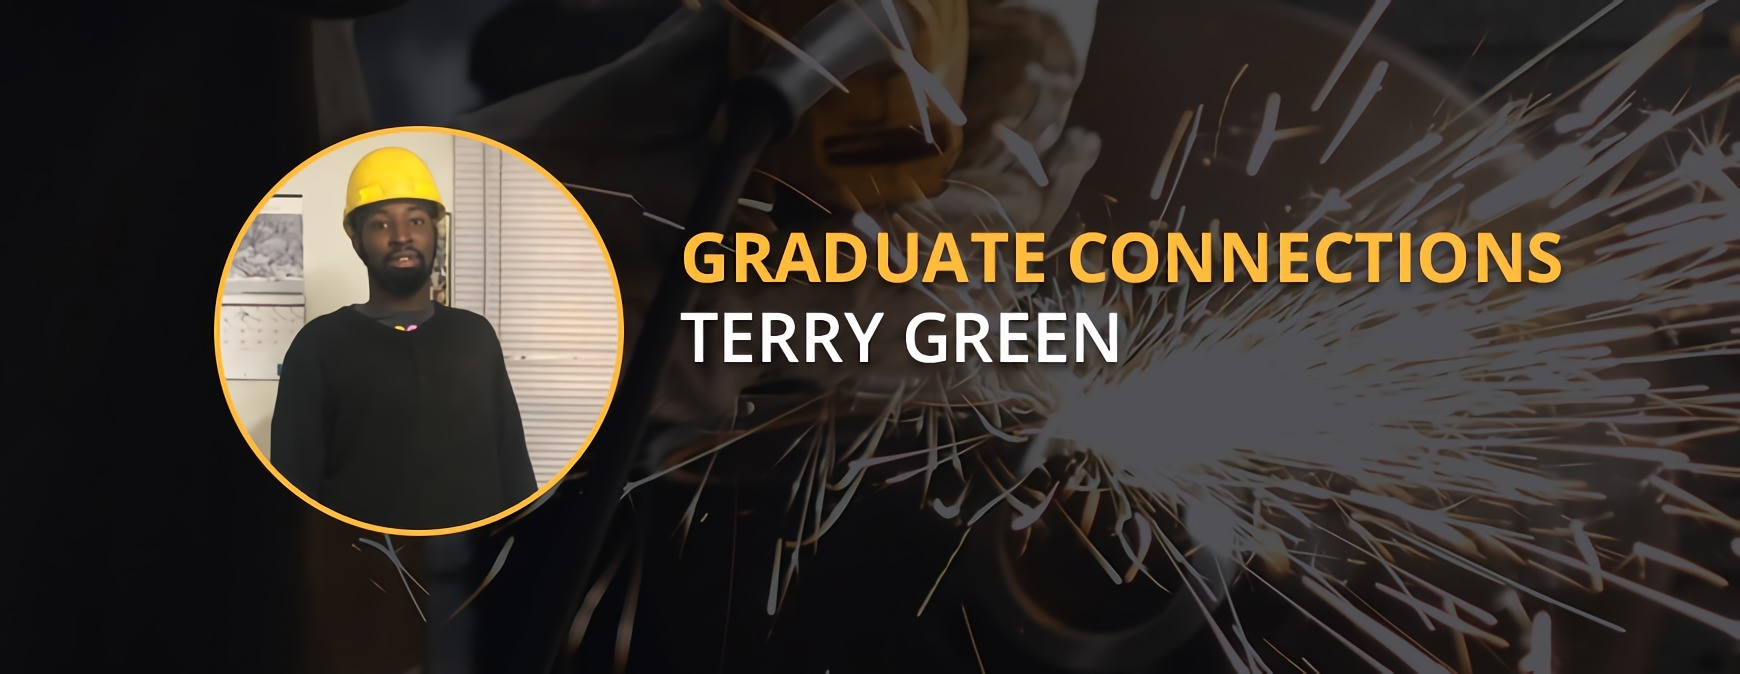 Terry Green Graduate Connections